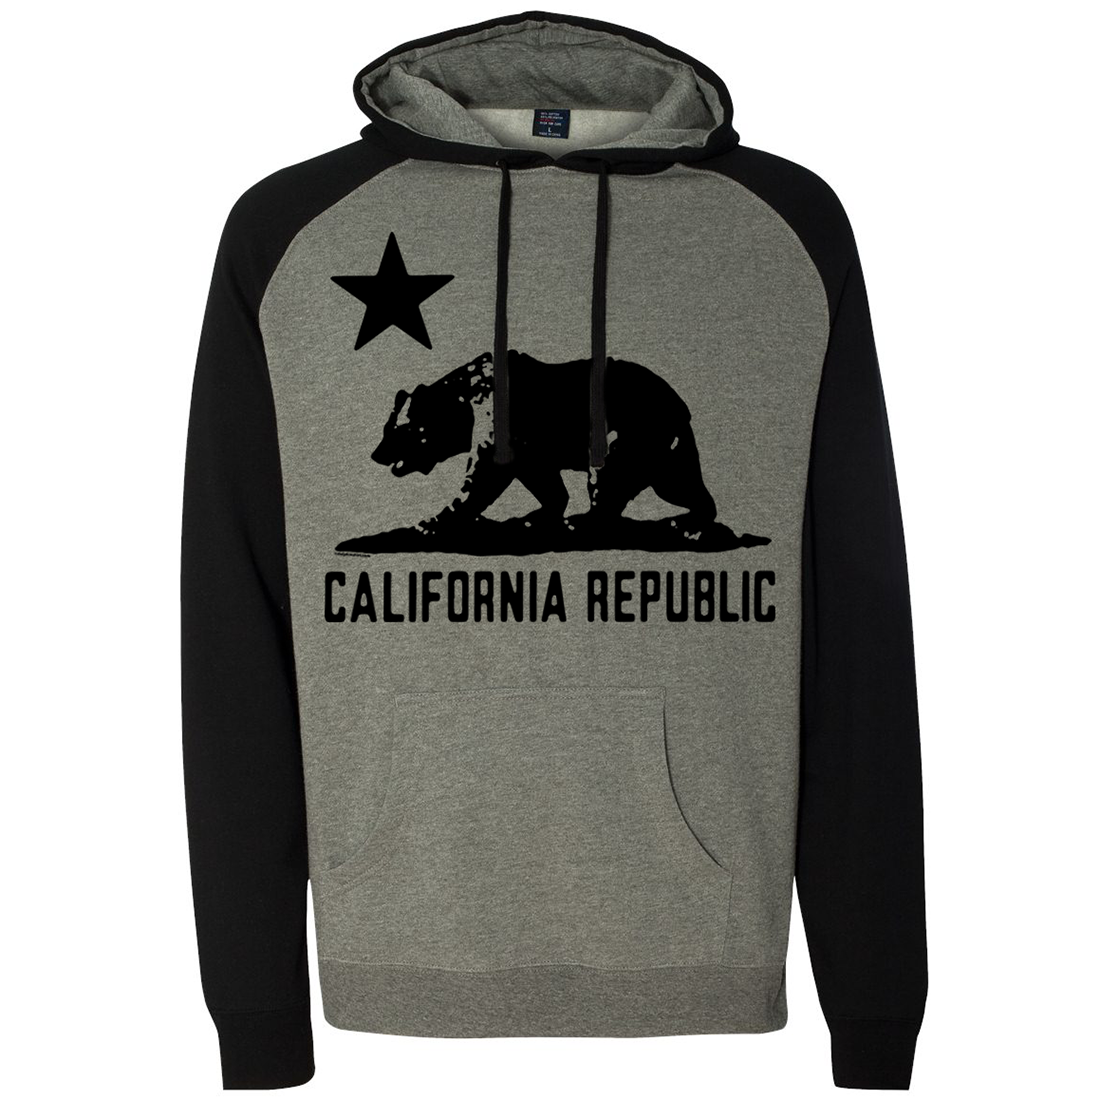 California Republic Black Oversized Silhouette Raglan Hoodie